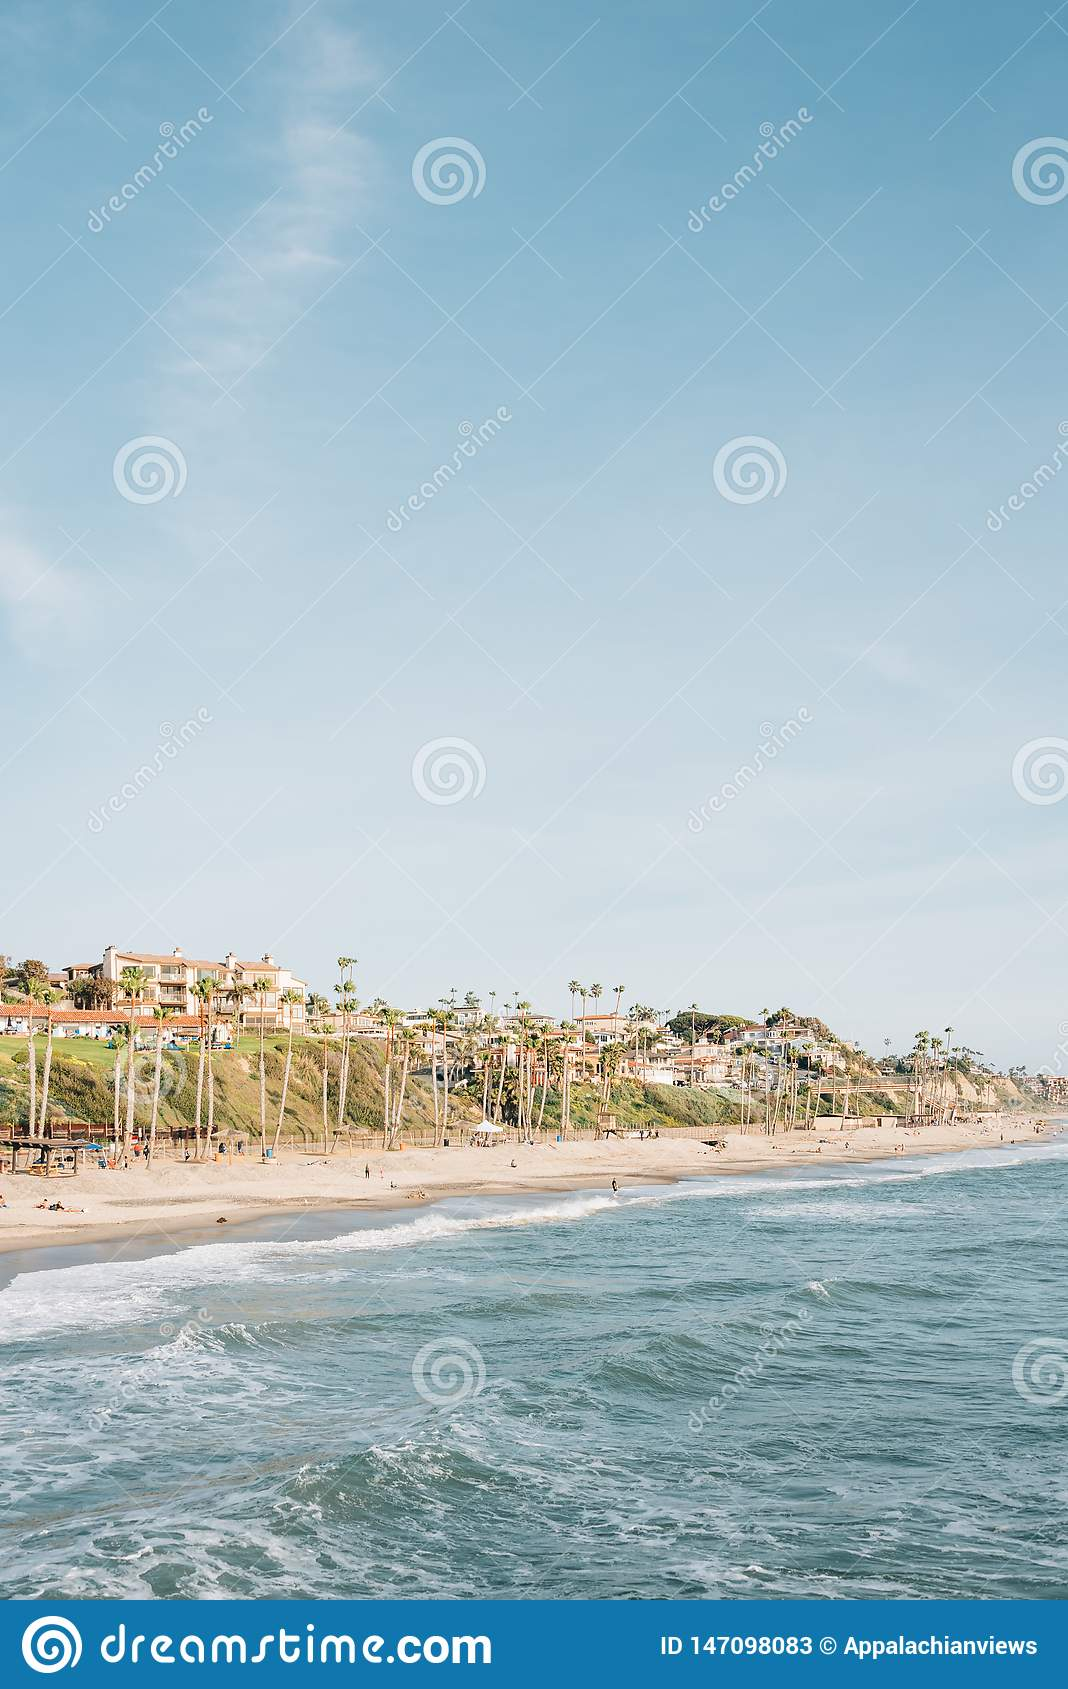 View of the beach from the pier in San Clemente, Orange County, California